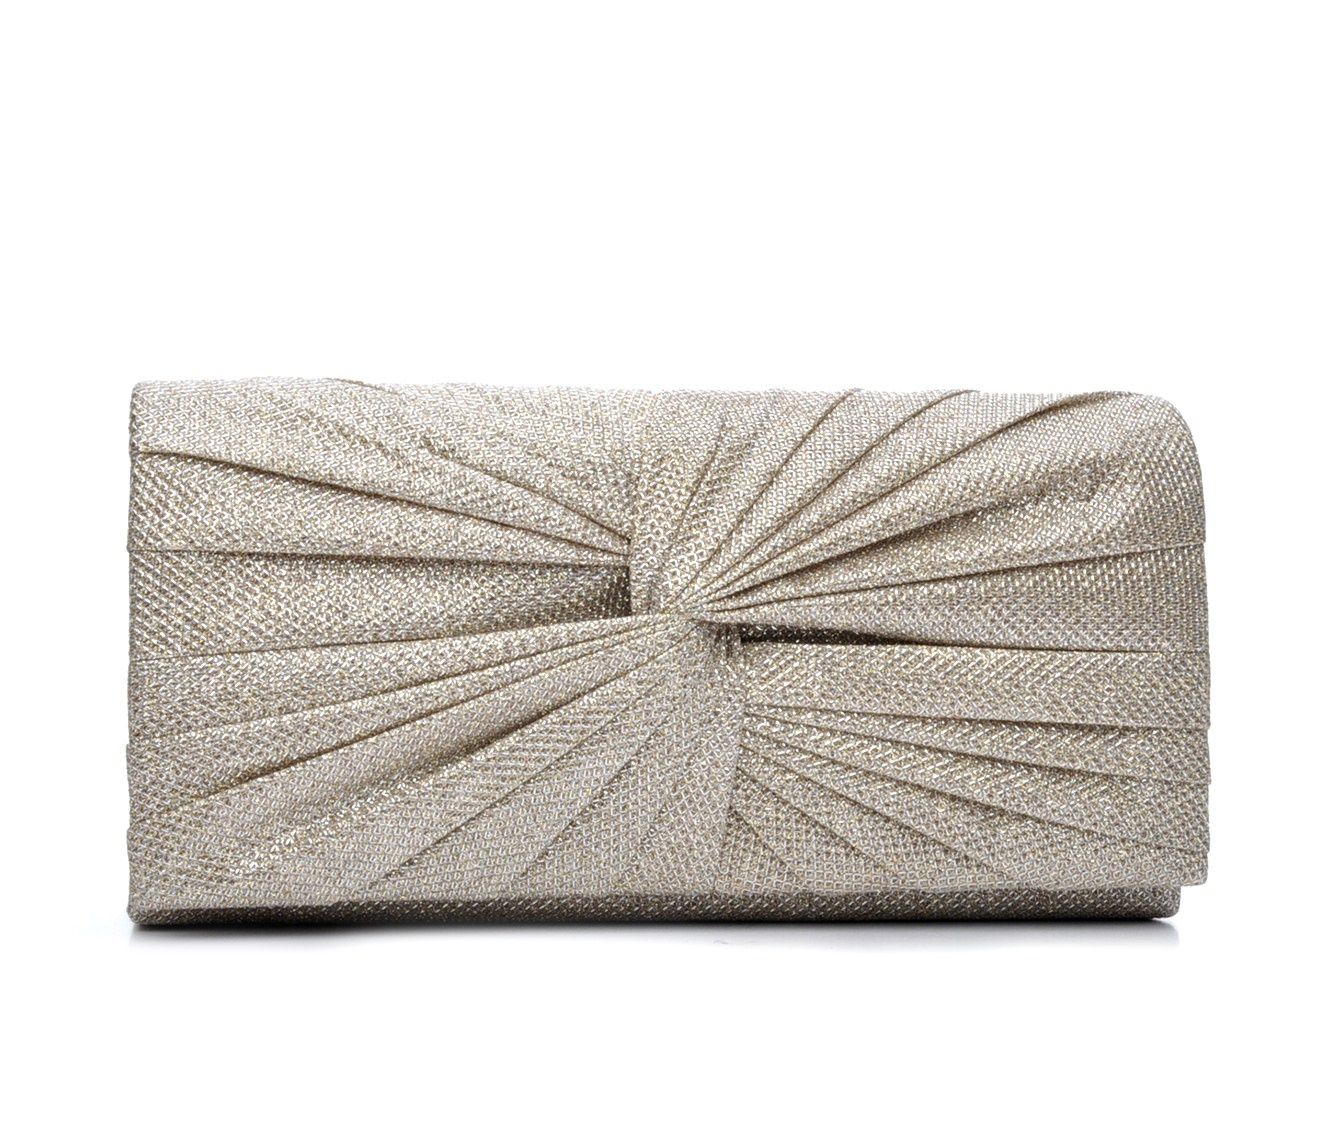 Four Seasons Handbags Large Metallic Evening Clutch (Beige)